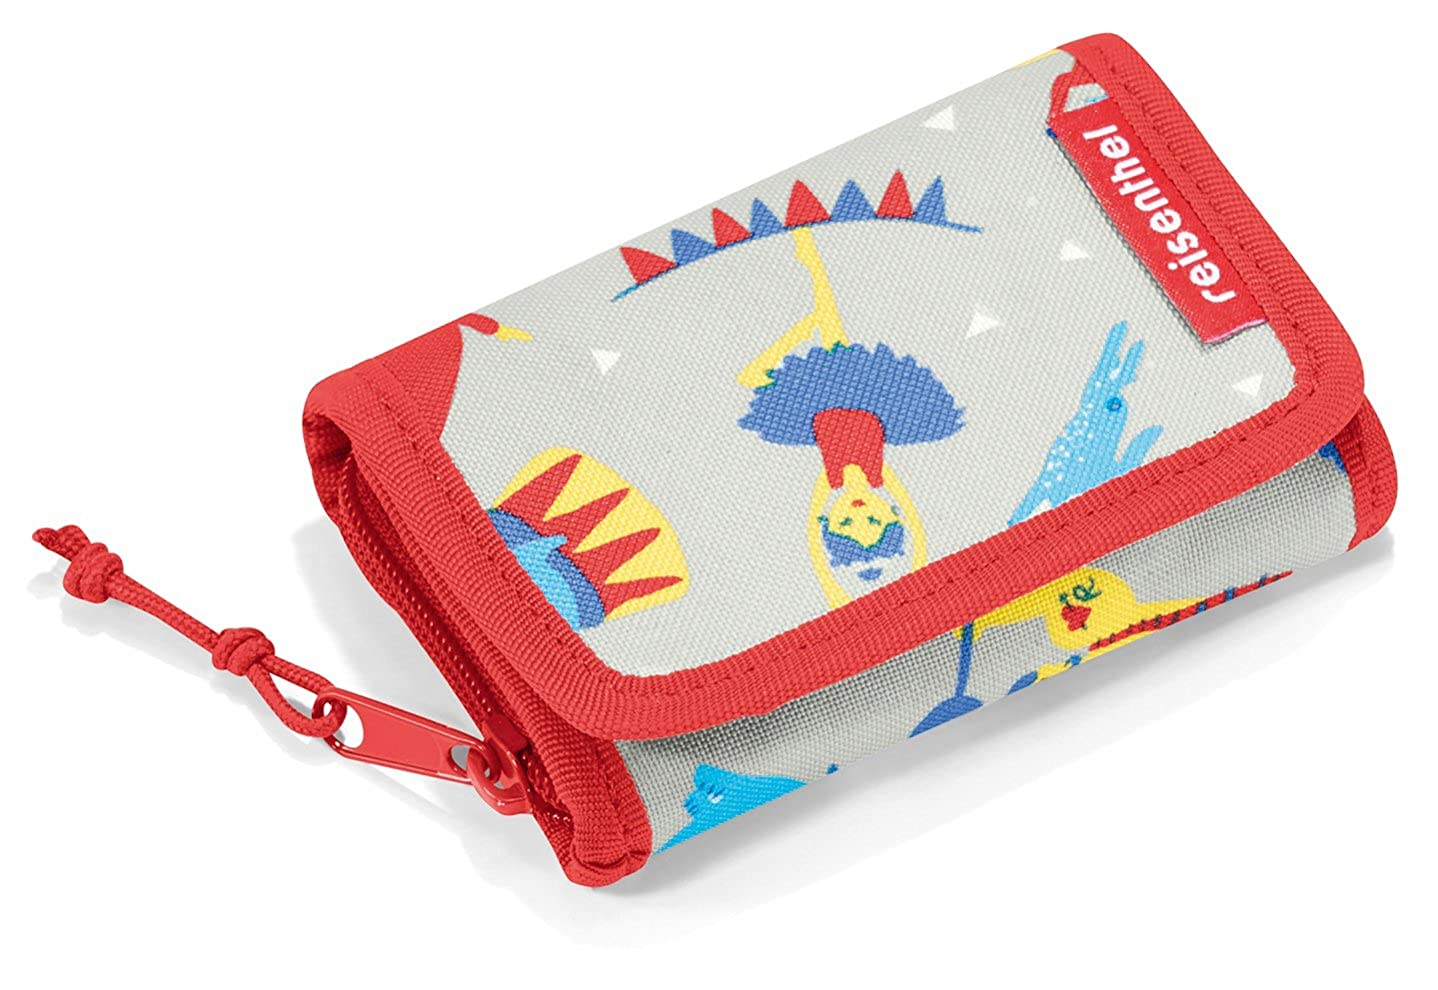 reisenthel Wallet S kids, Small Children's Wallet Small Children' s Wallet Cactus Blue IM4049